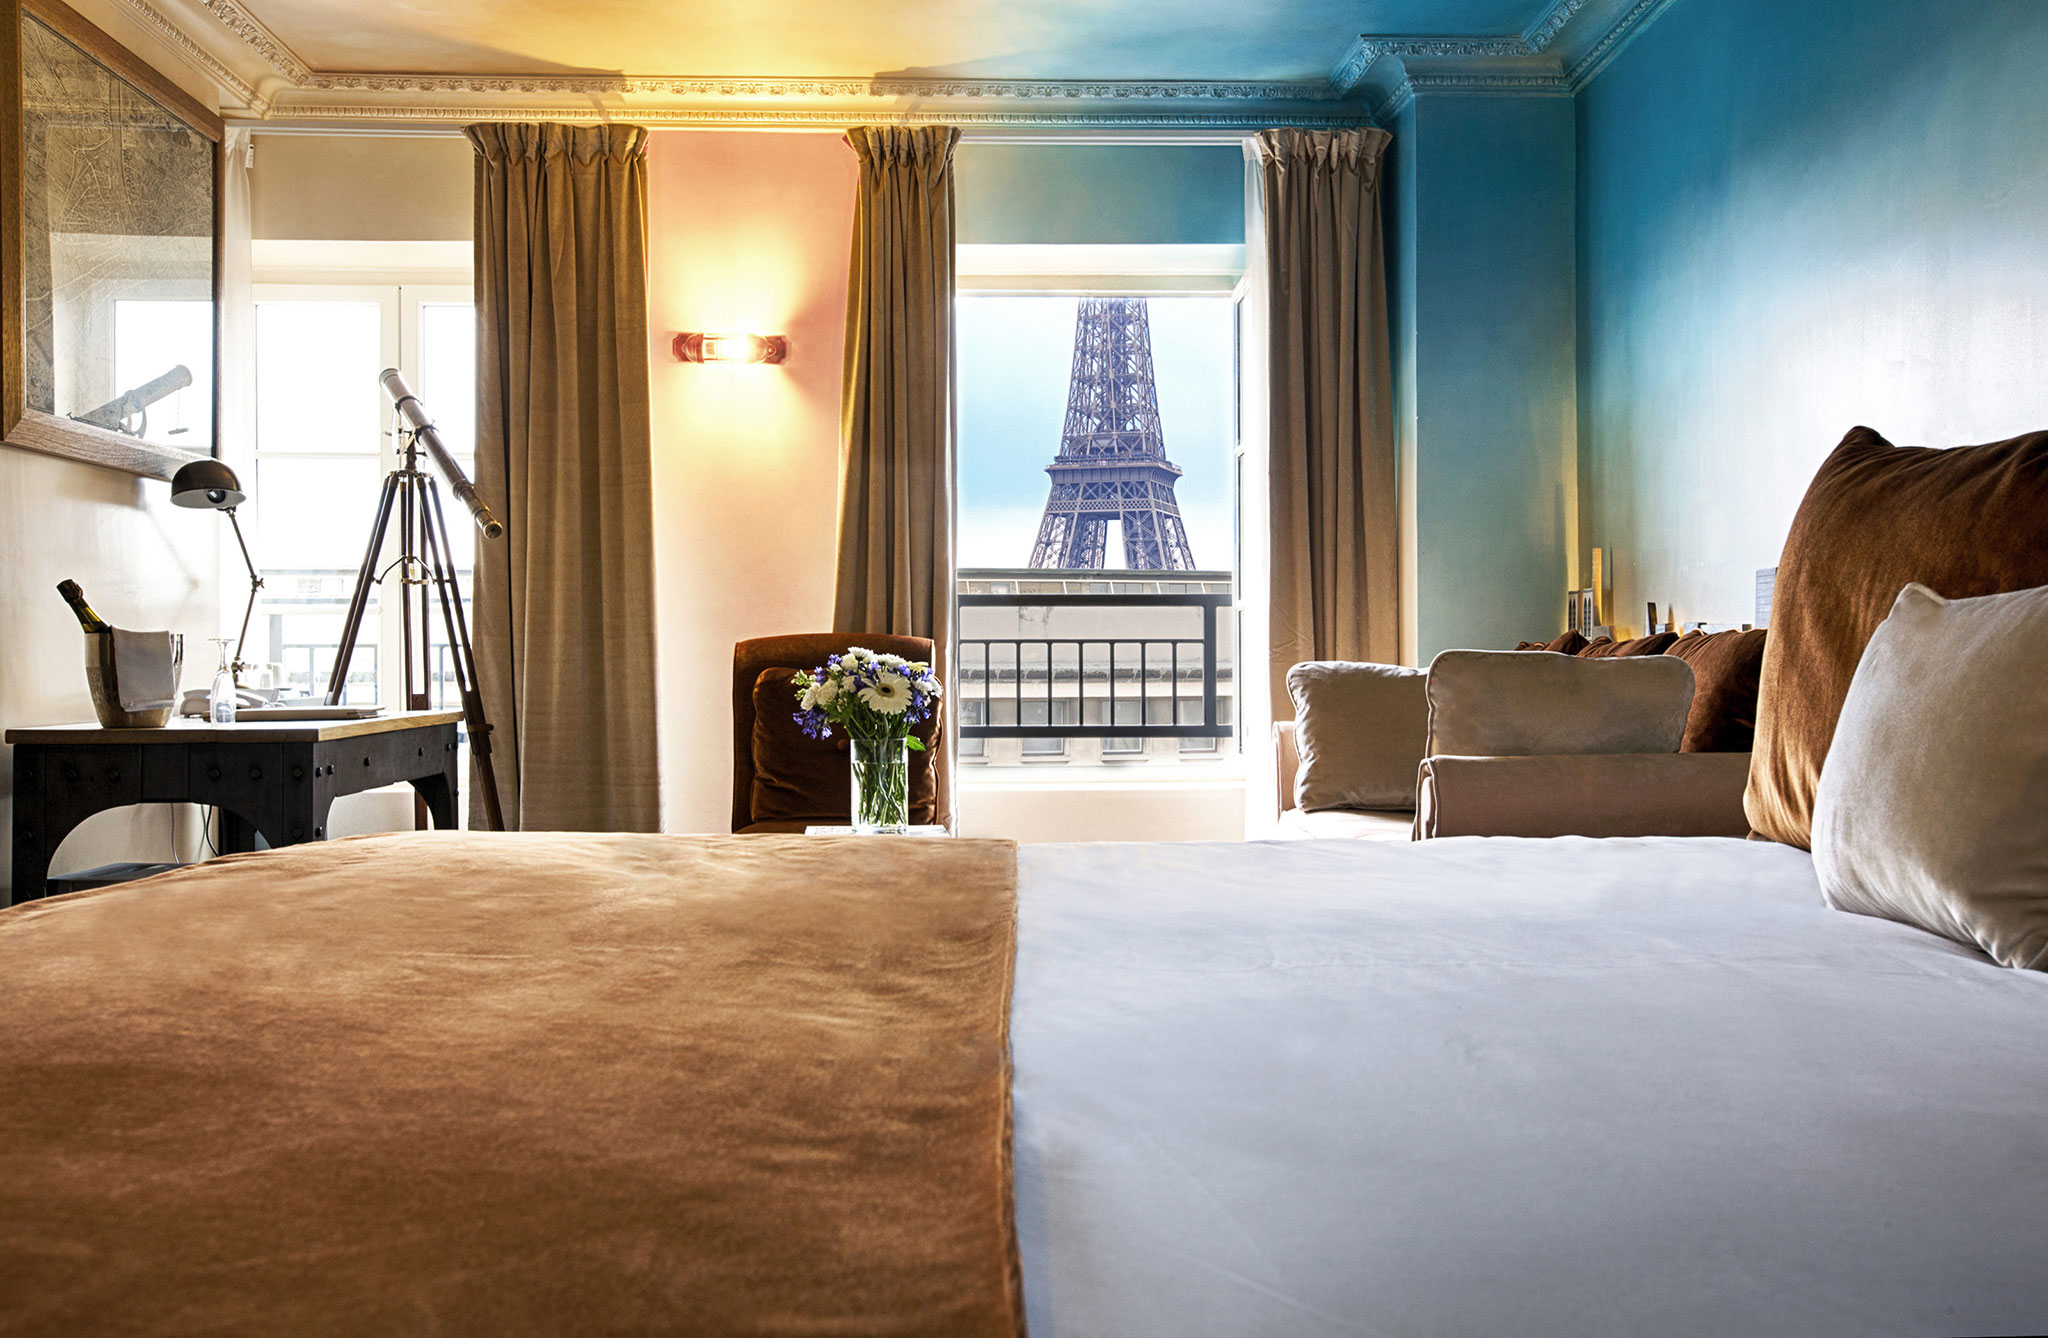 Cheap hotels rooms in paris france near eiffel tower for Hotel close to eiffel tower